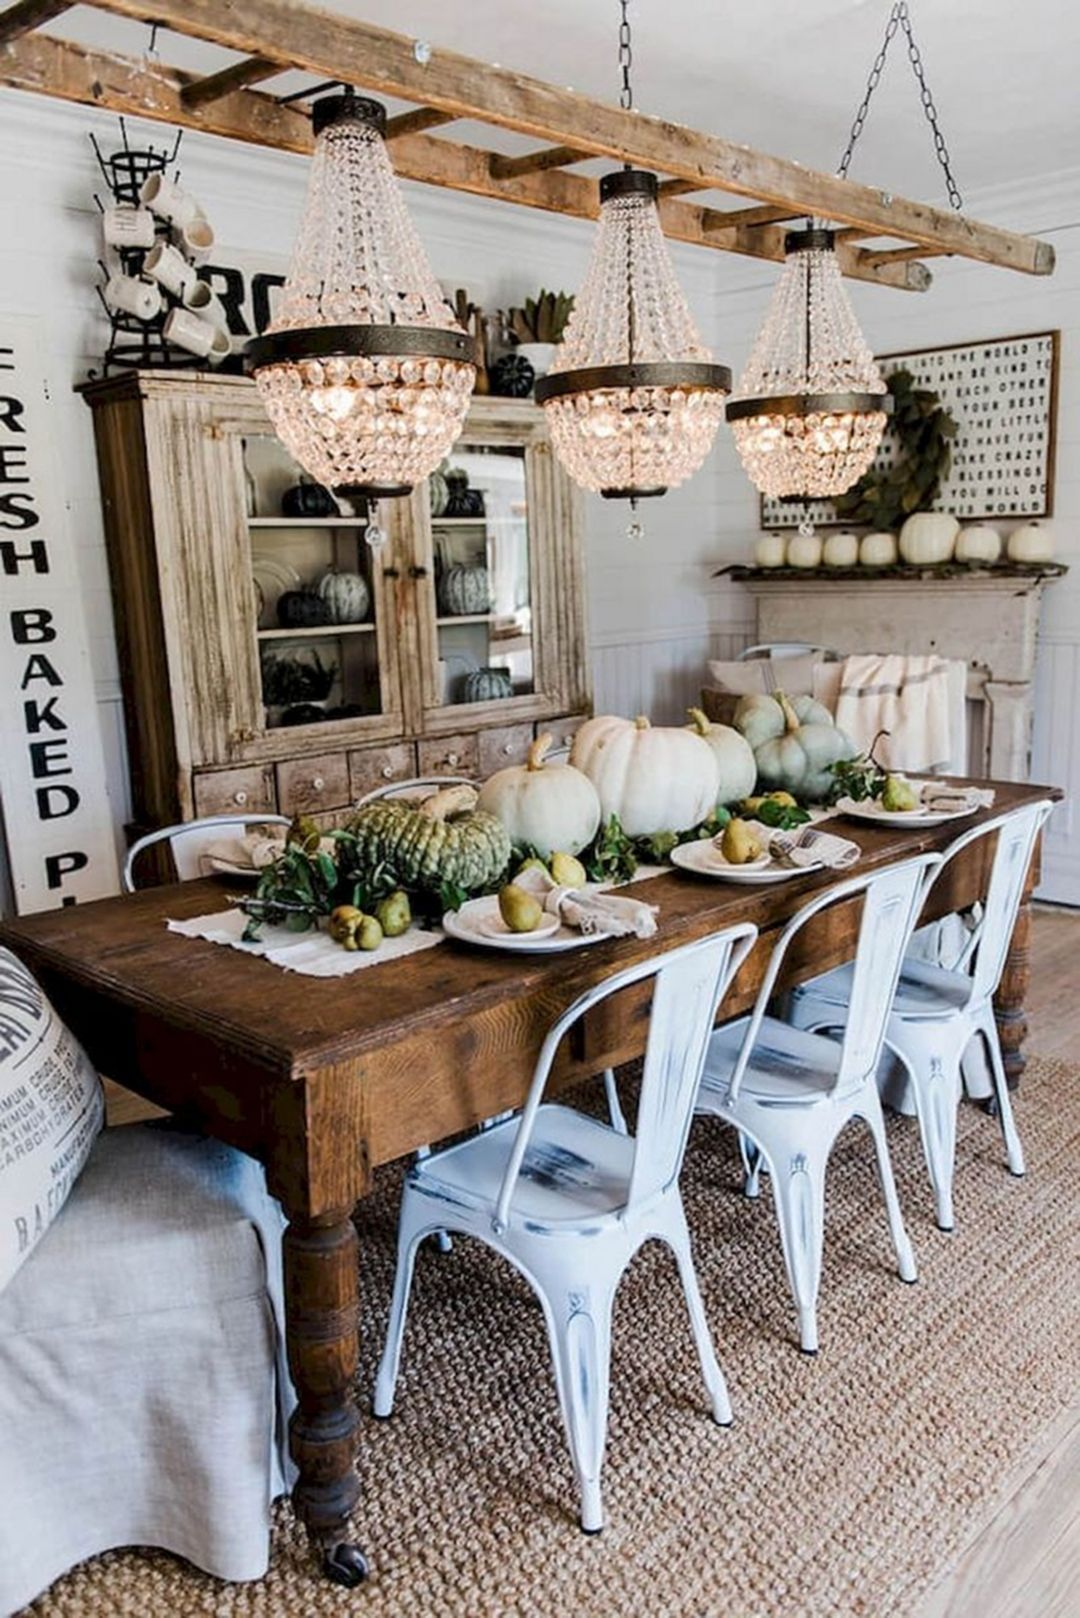 35 Most Popular Dining Room With Farmhouse Dining Table To Increasing Your Appetite images